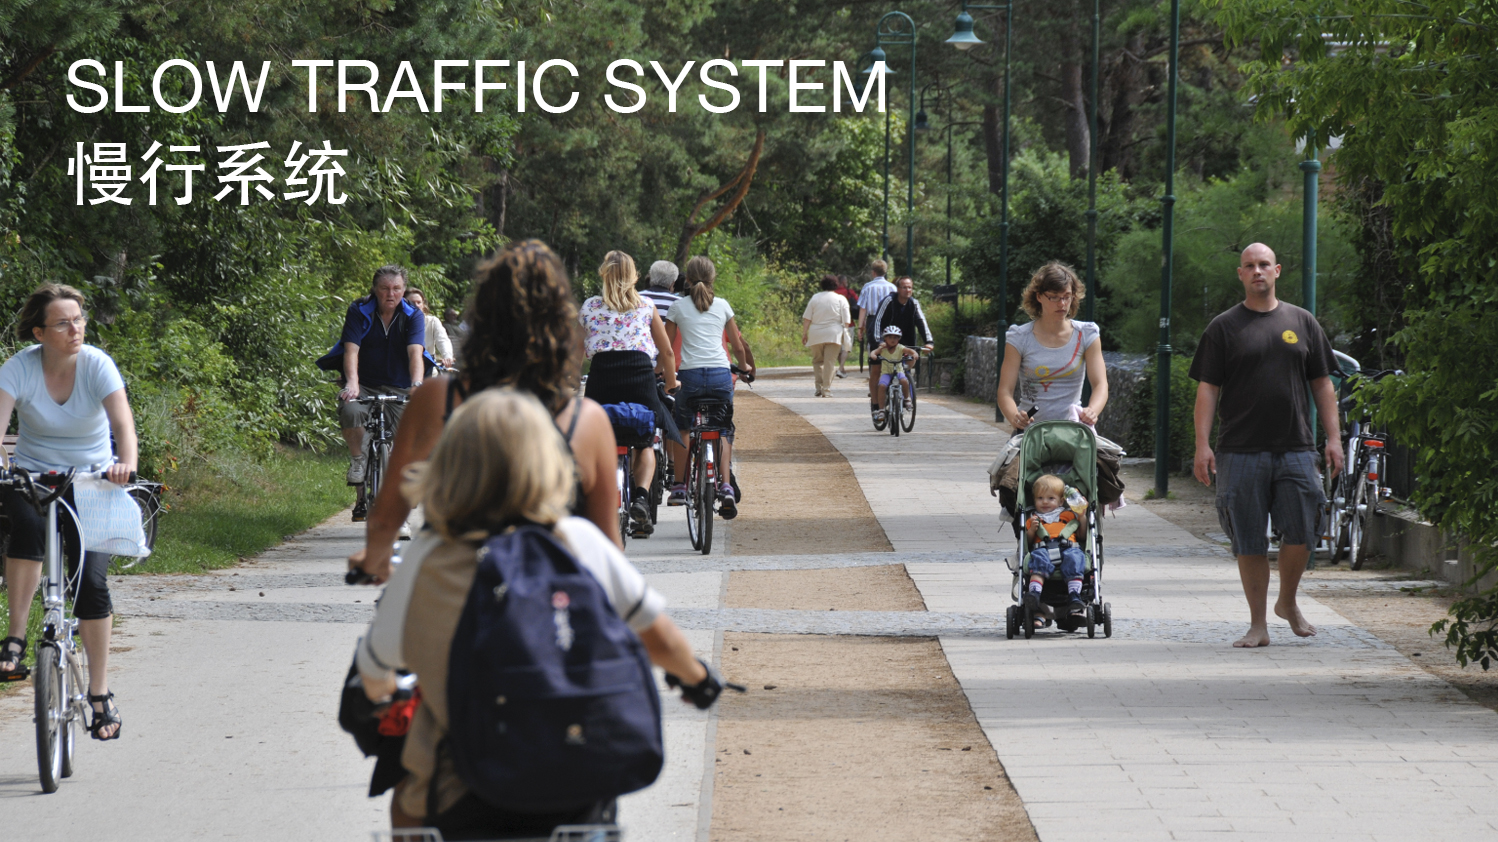 Slow traffic systems